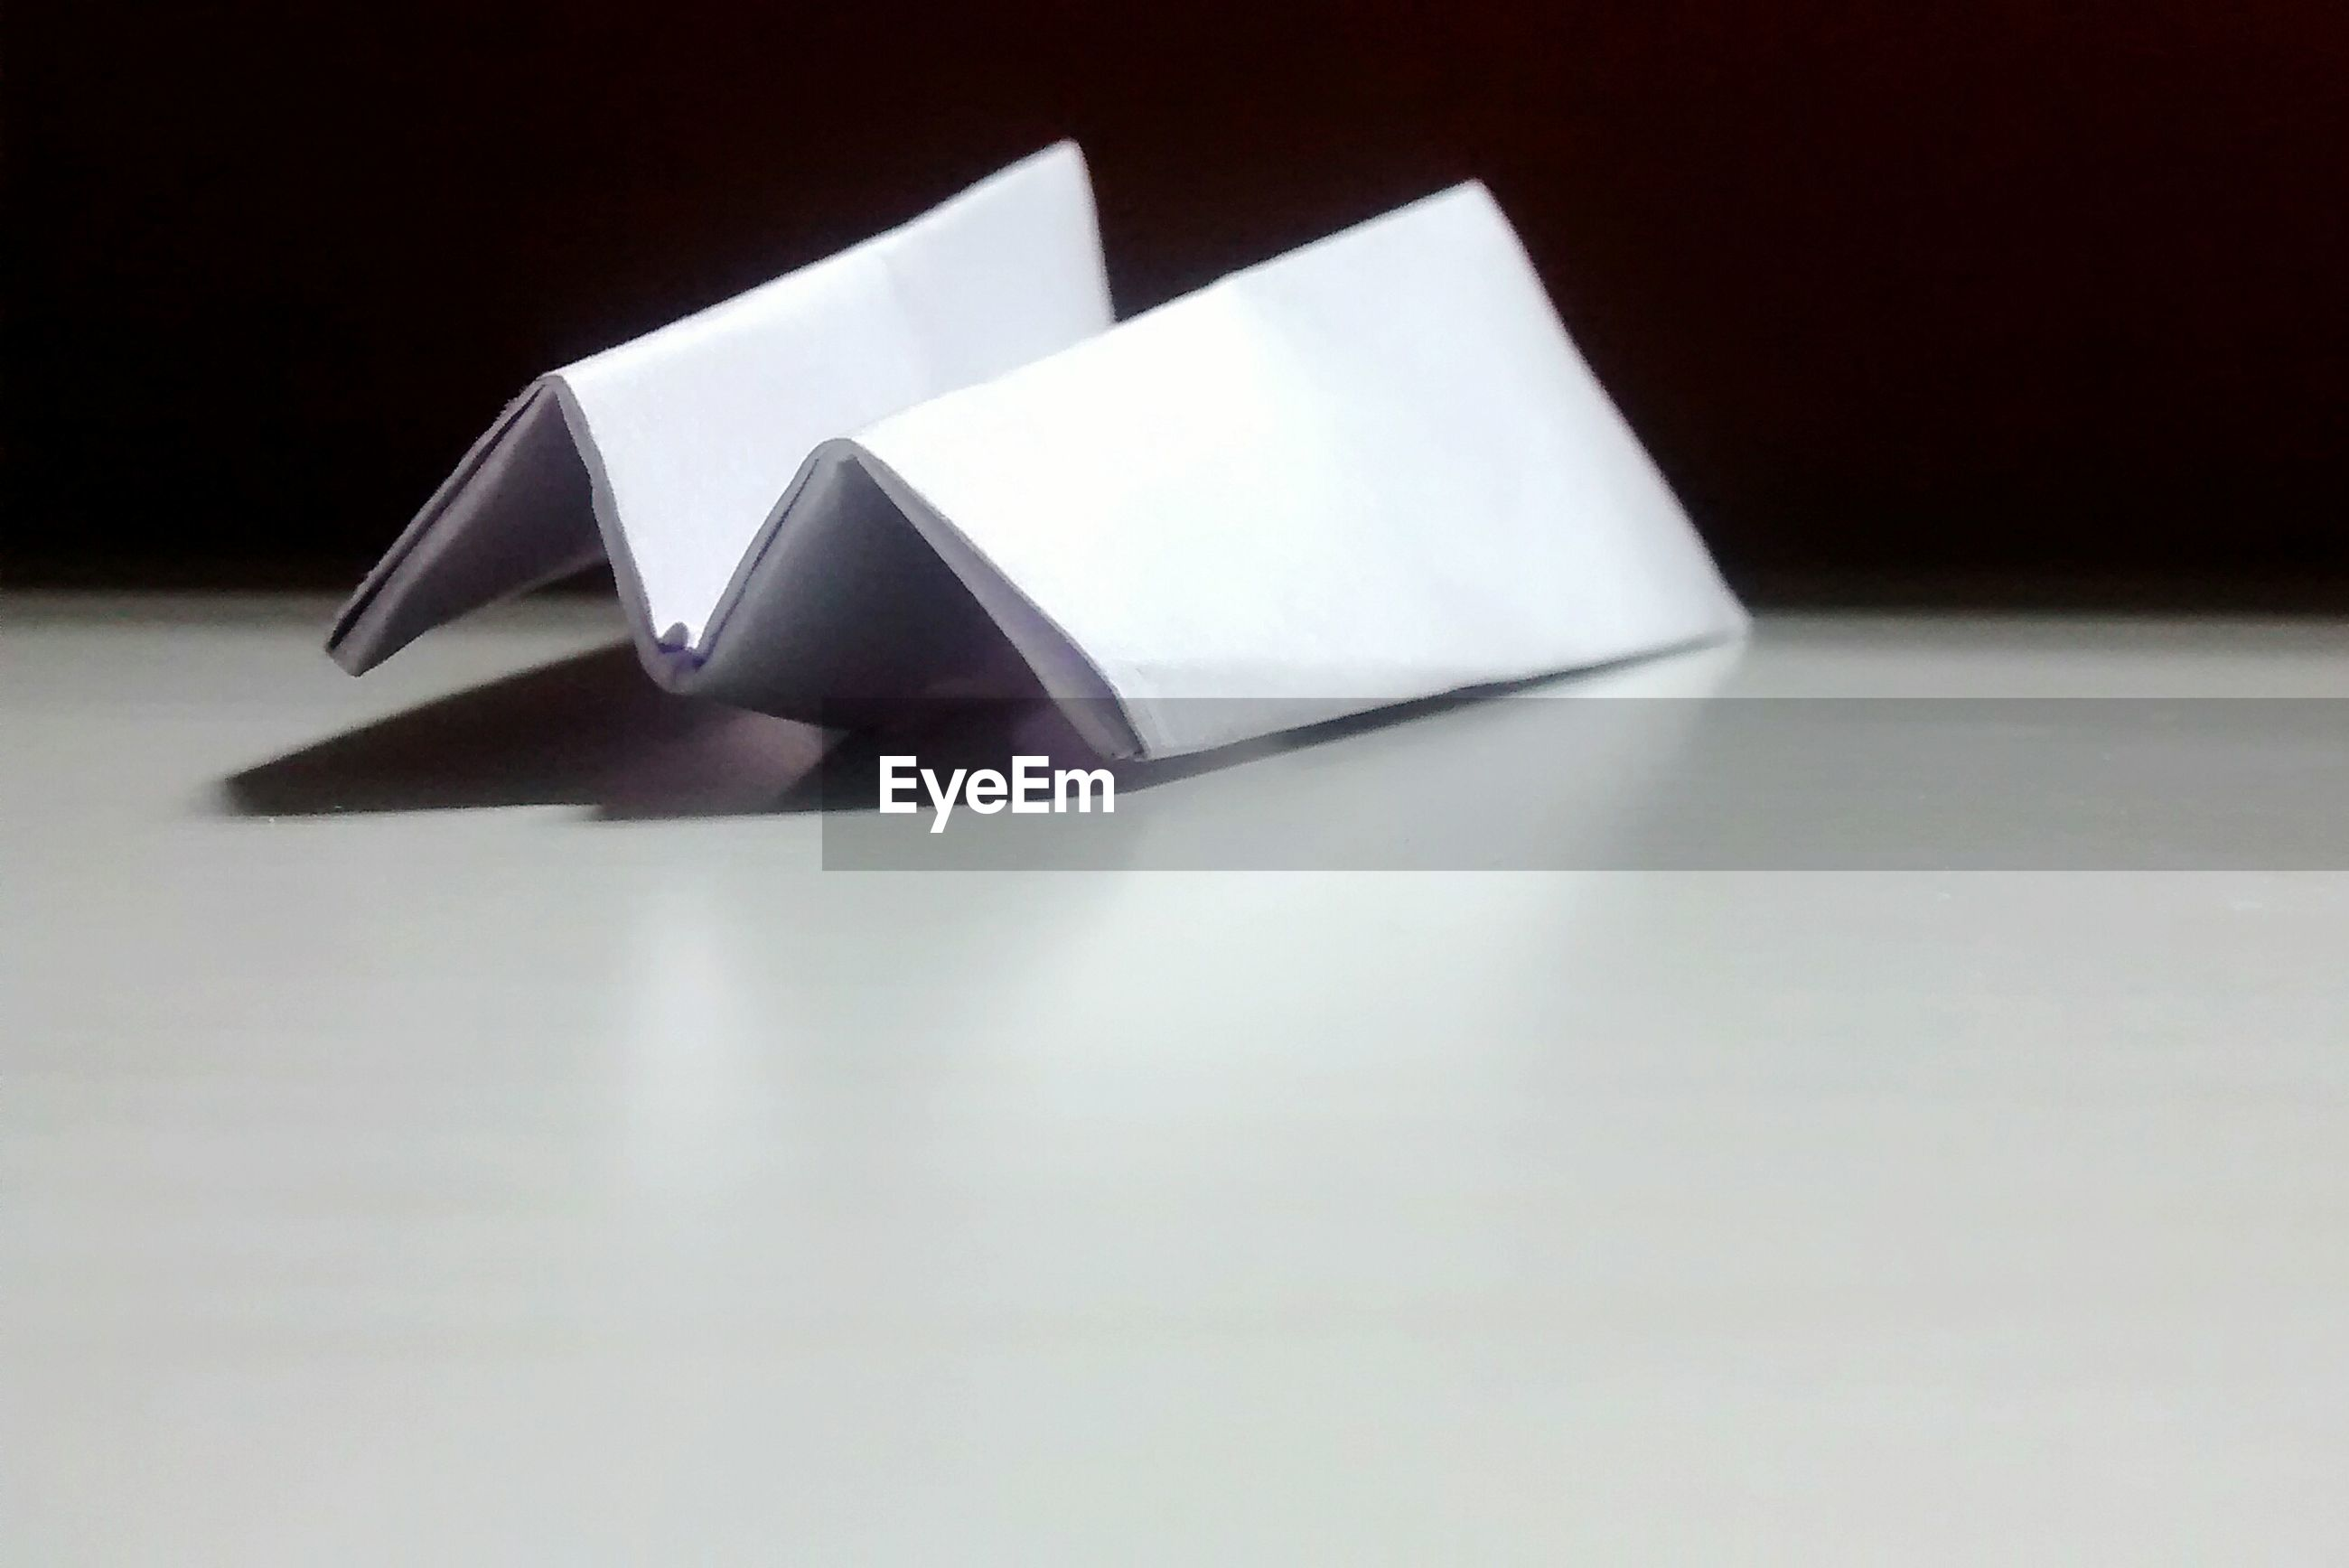 Paper airplane on table against wall